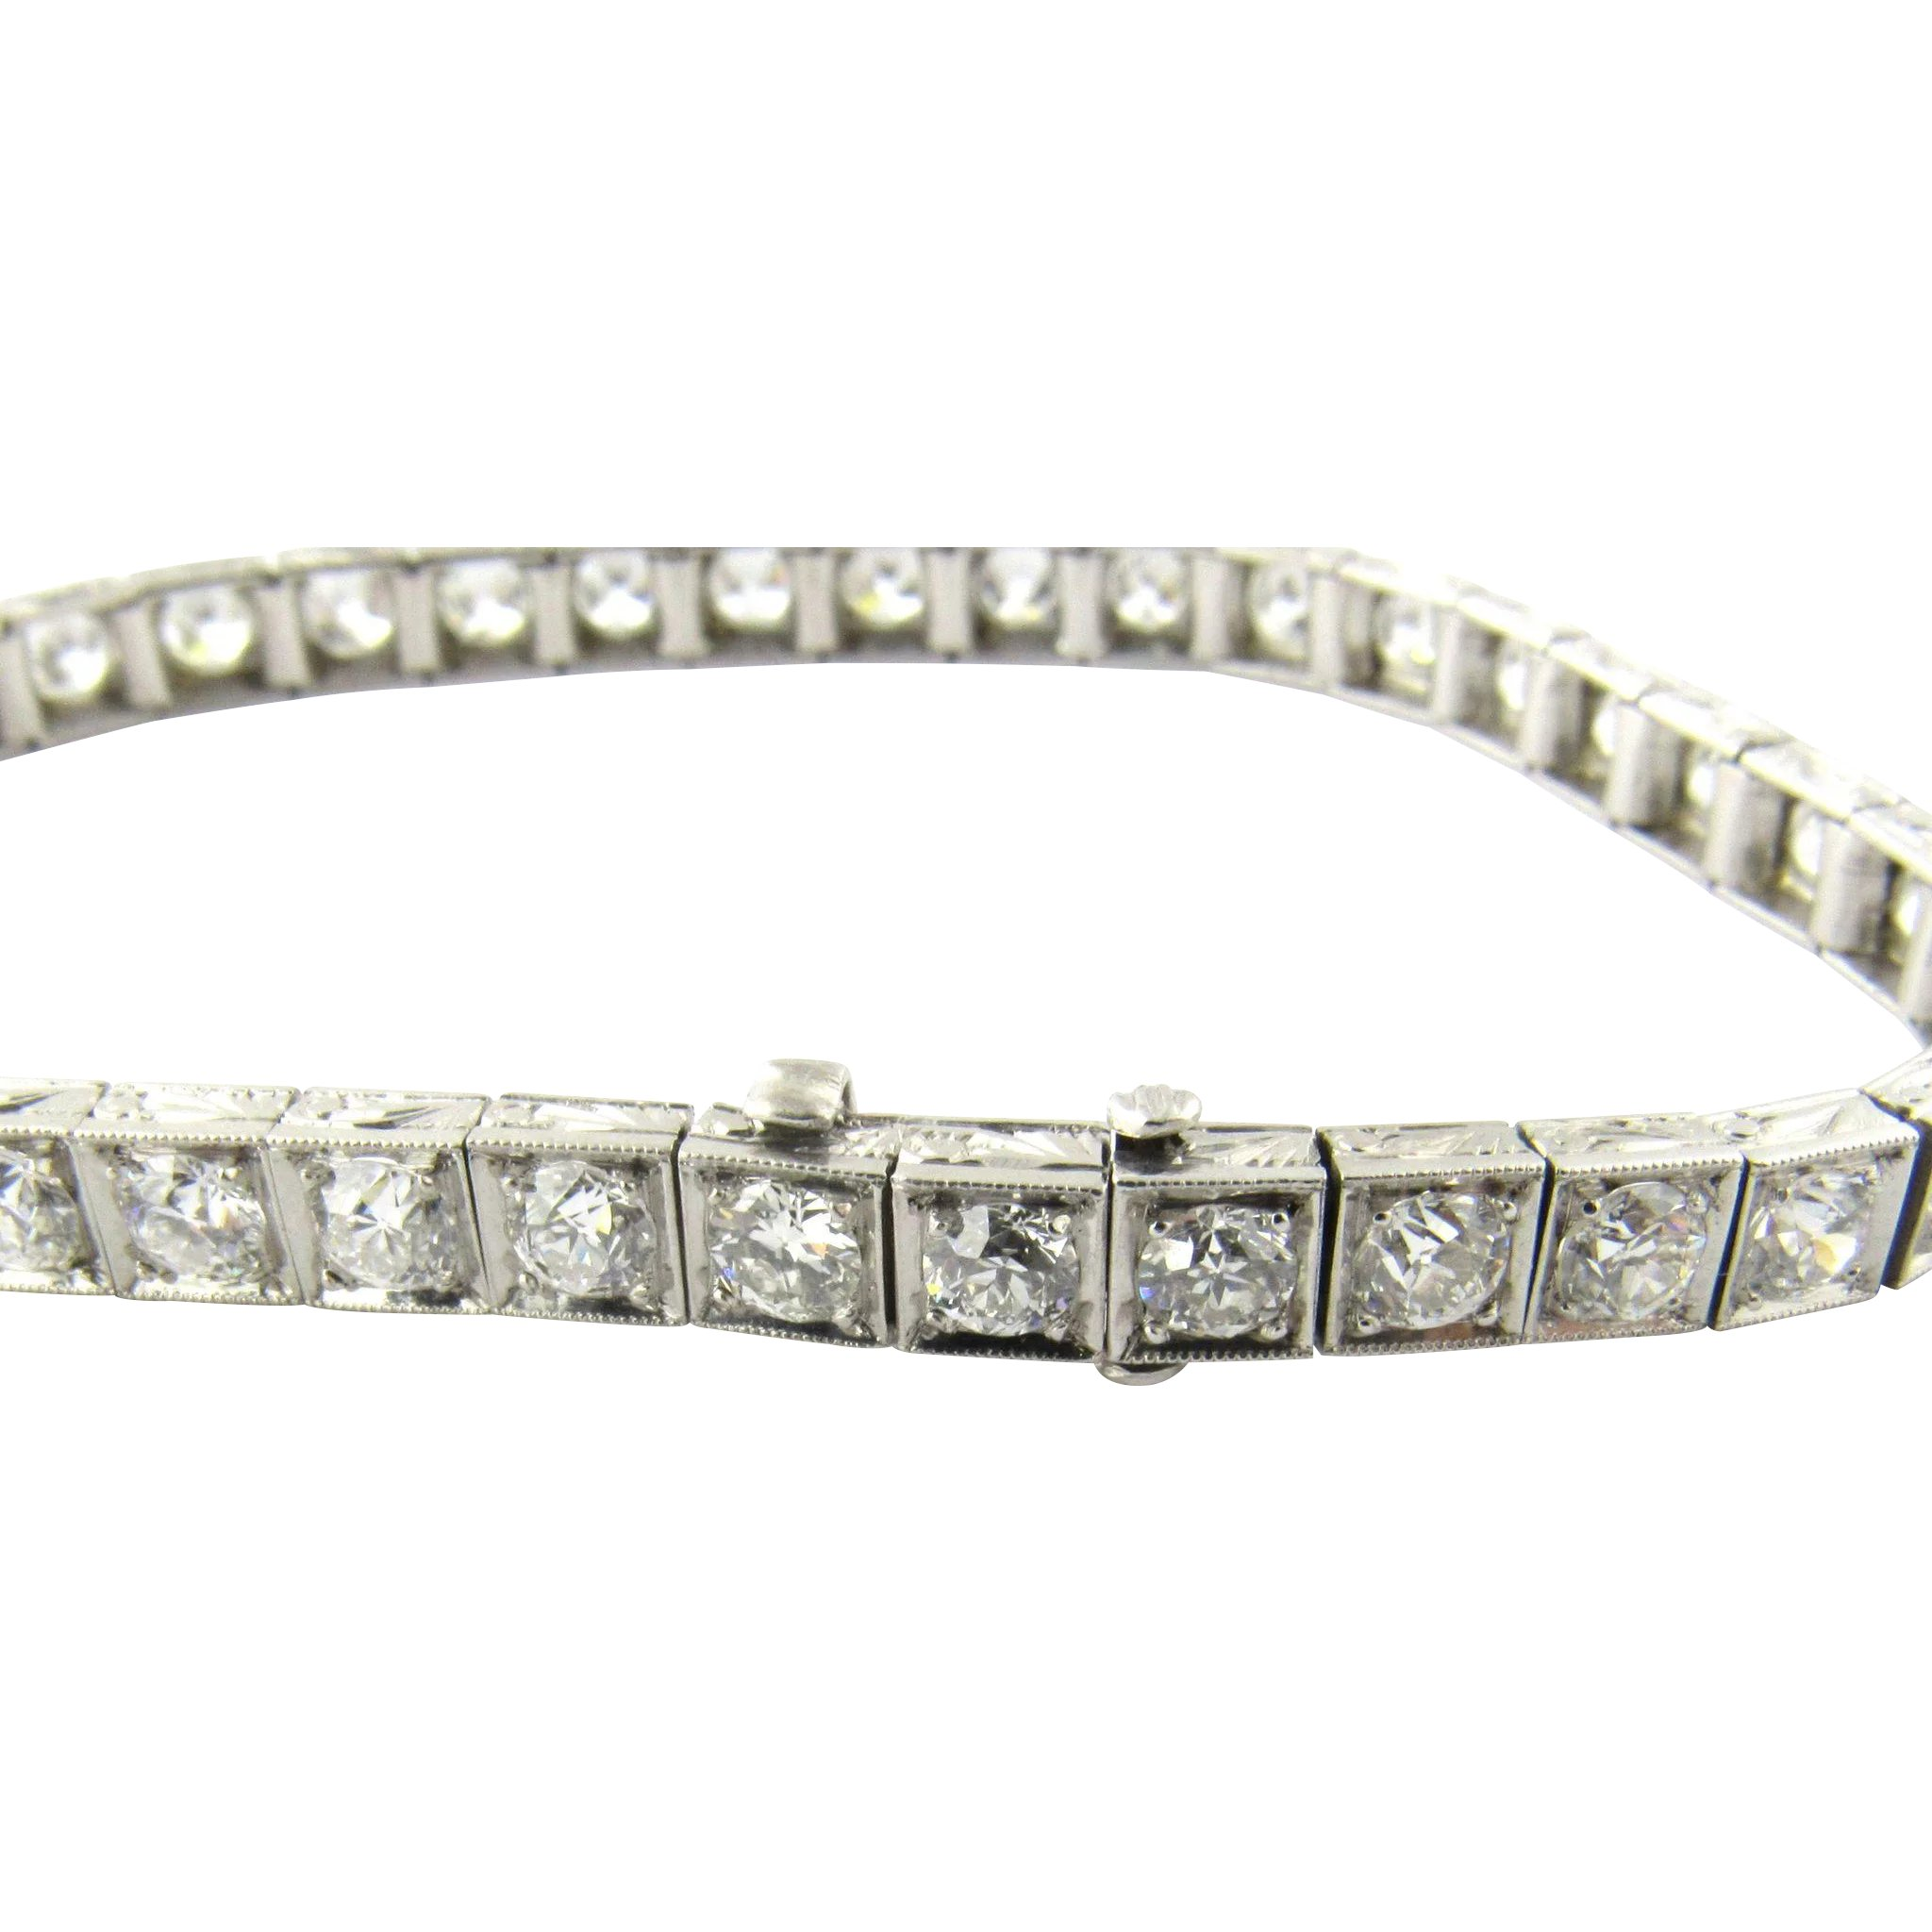 d96f96d4c81 Vintage Platinum European Cut Diamond Tennis Bracelet 6 carats   Gold and  Silver Brokers